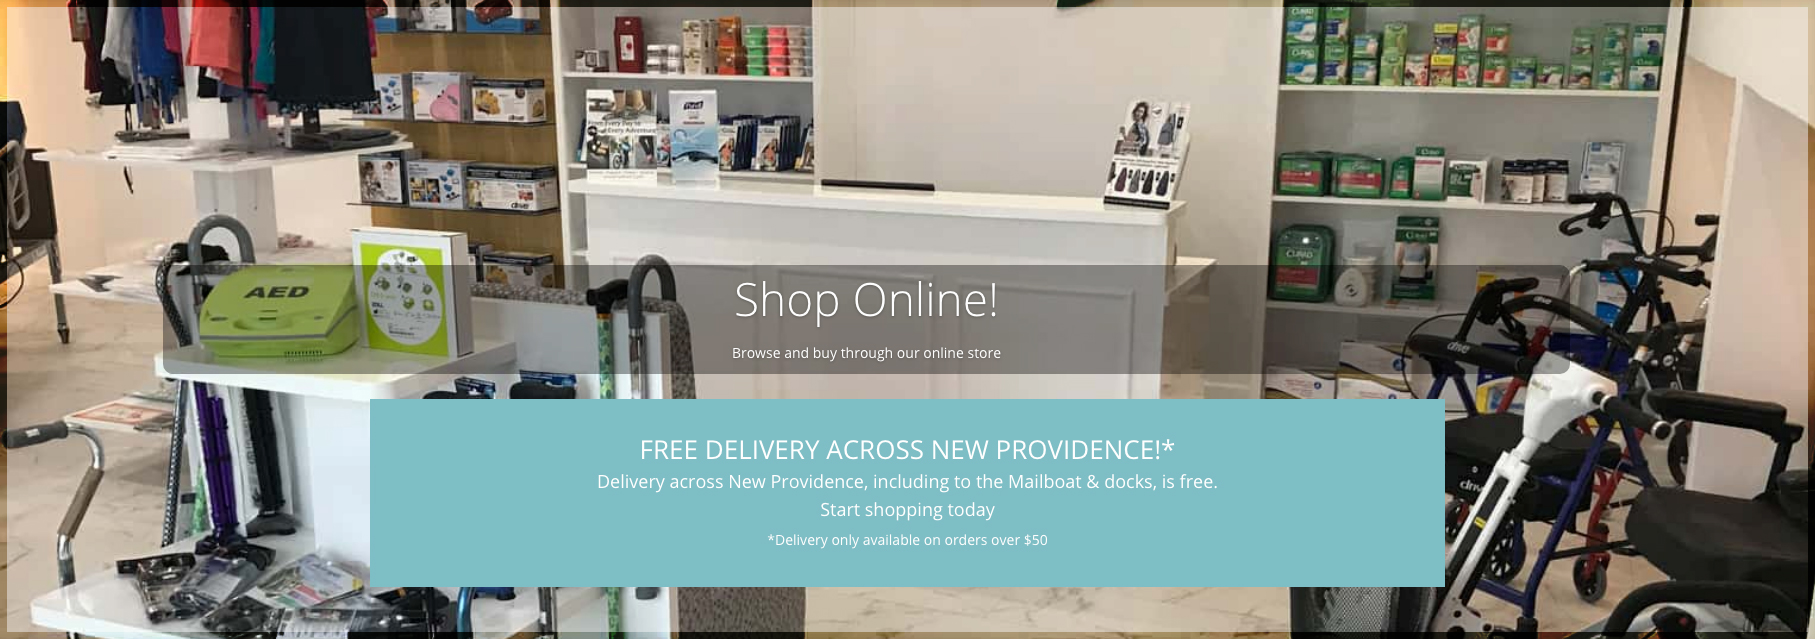 Ports International Launches Online Store, Free Delivery and Curbside Service!